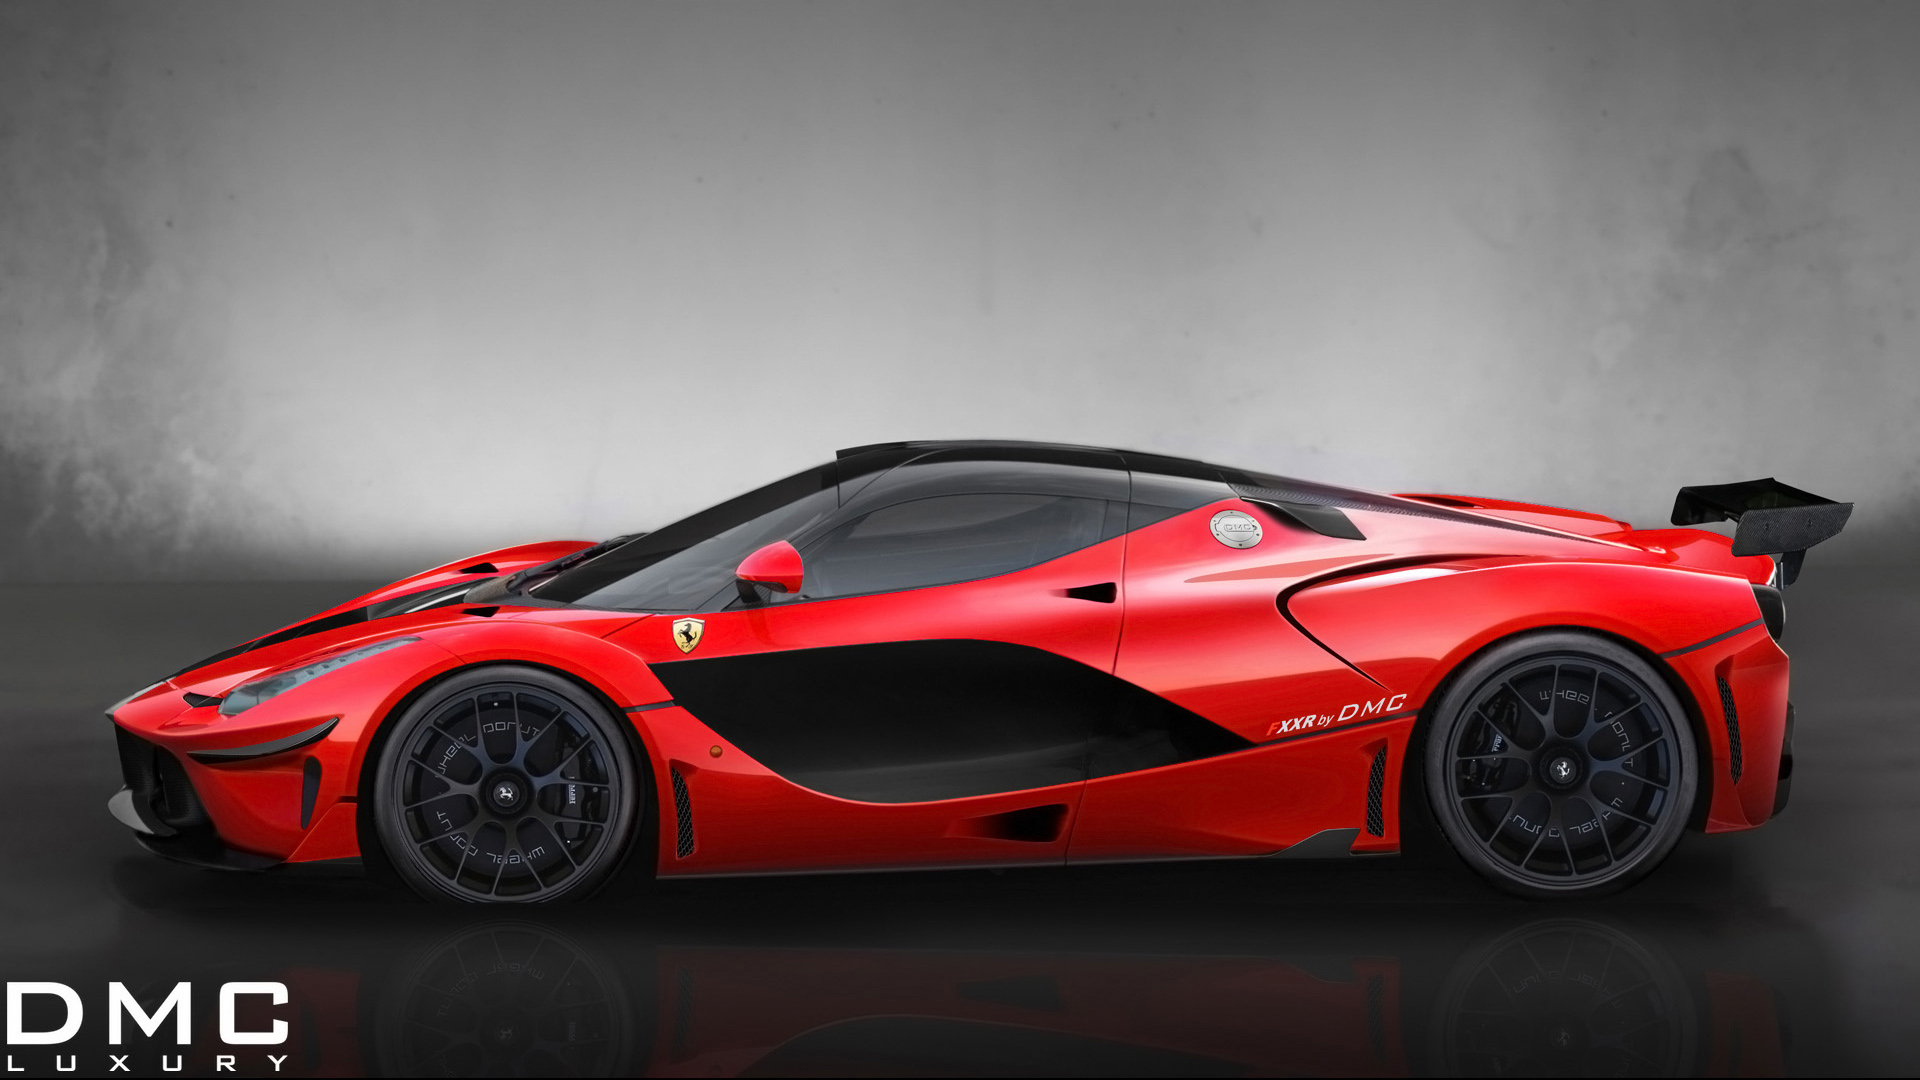 2014 DMC Ferrari LaFerrari FXXR 2 Wallpaper  HD Car Wallpapers